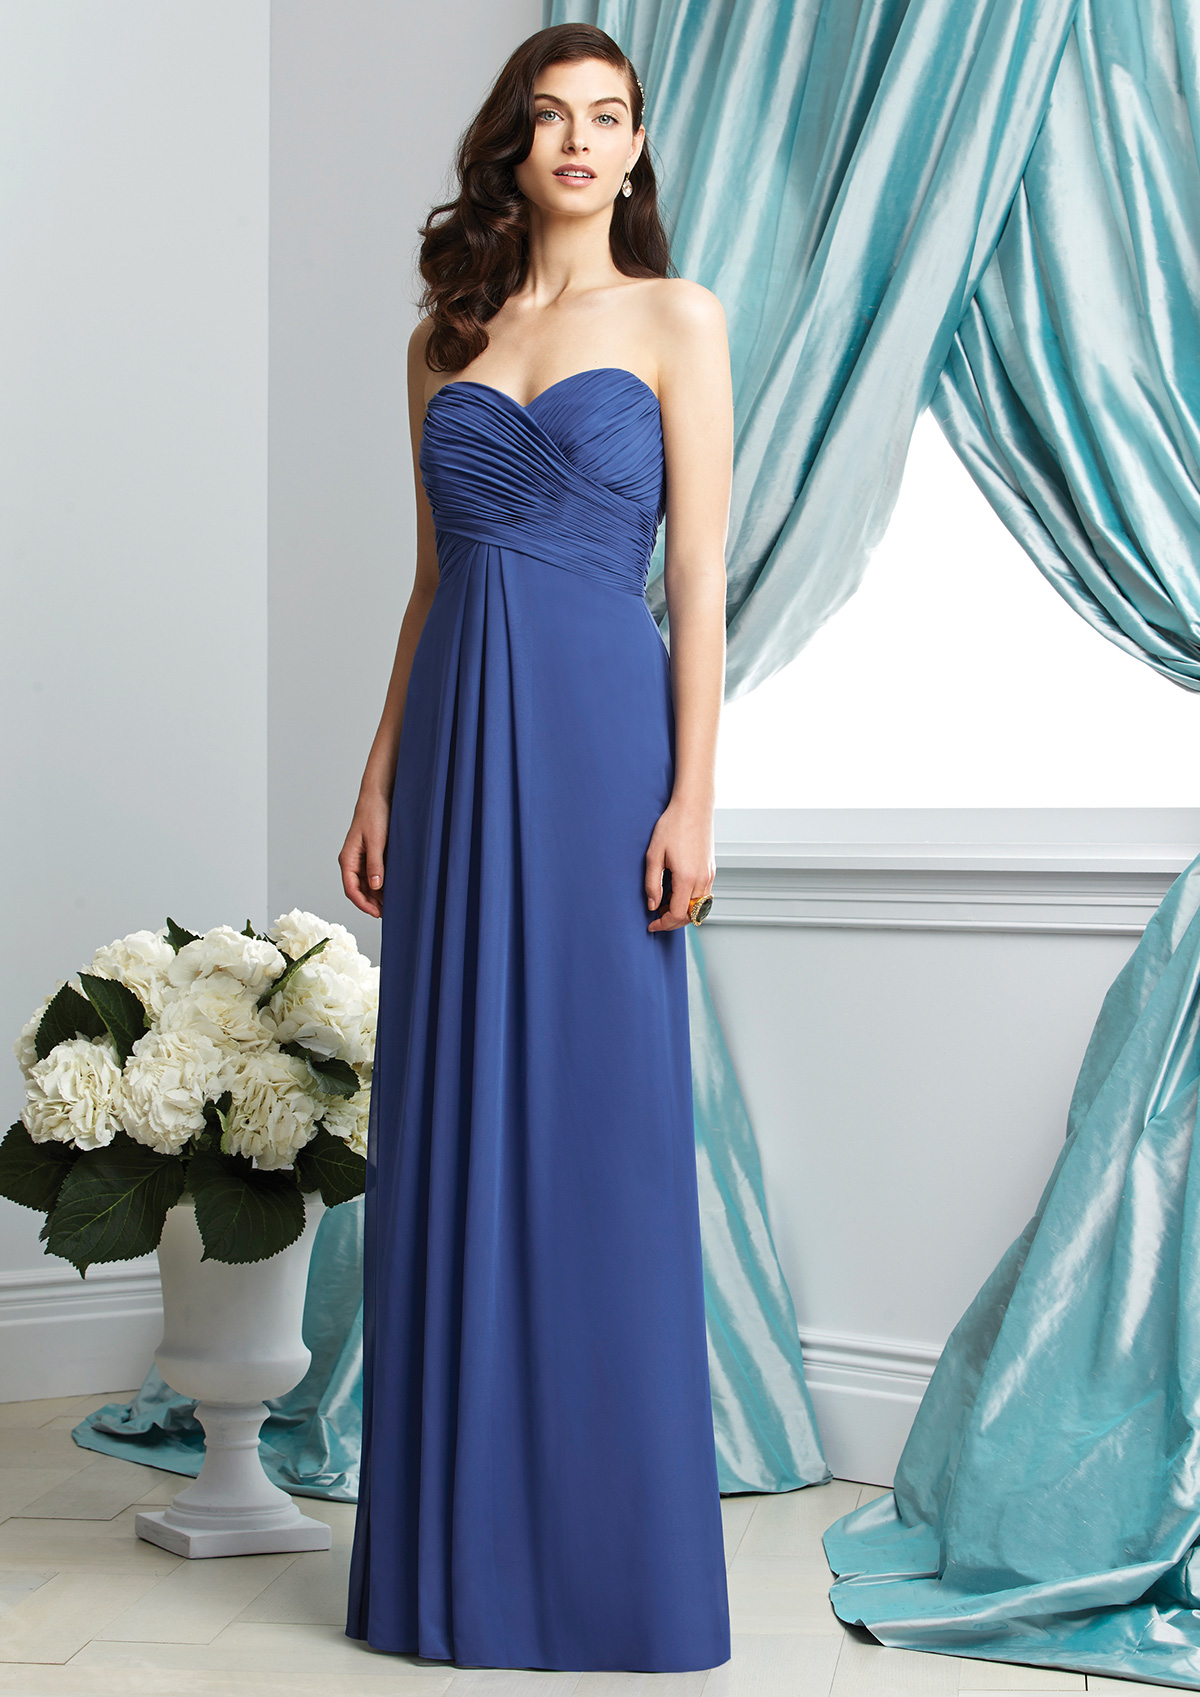 Bridesmaid dress dessy 2928 la bella sposa dessy 2928 ombrellifo Gallery